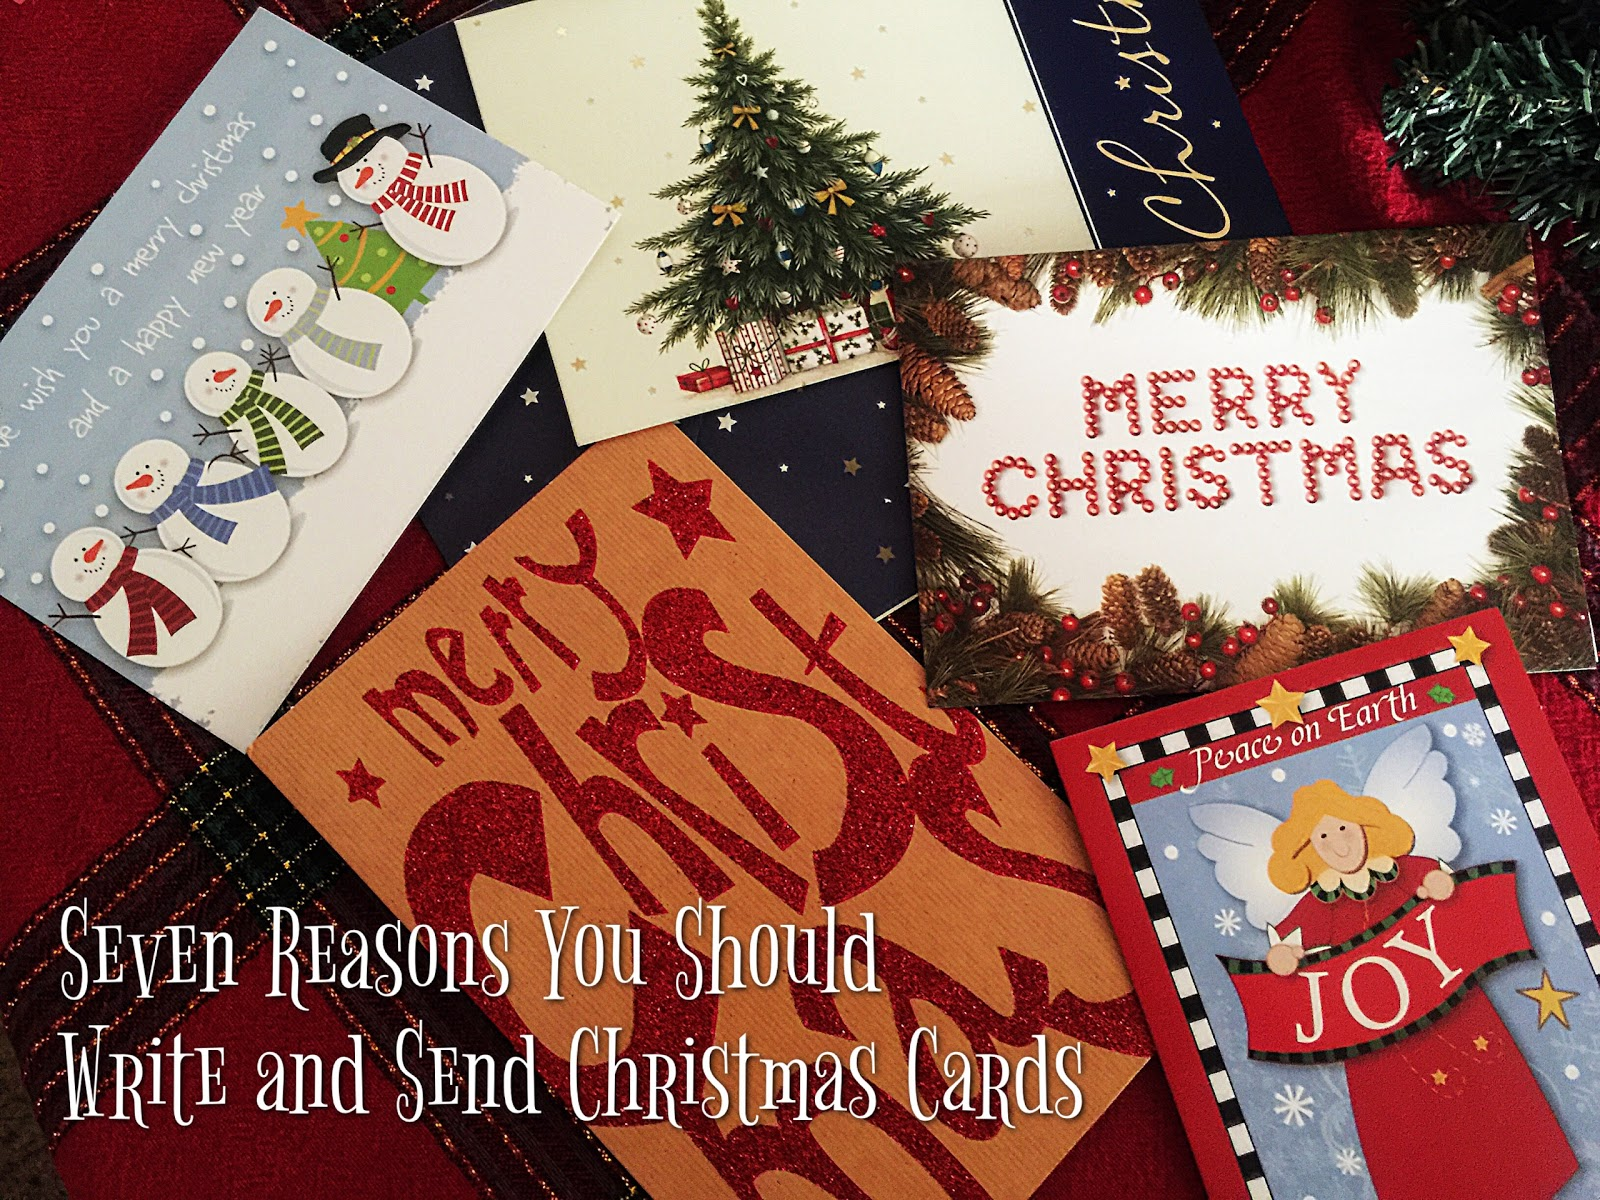 advent season is a time of preparation and anticipation of the birth of christ christmas cards are an exceptional way to celebrate the advent season and - Send Christmas Cards